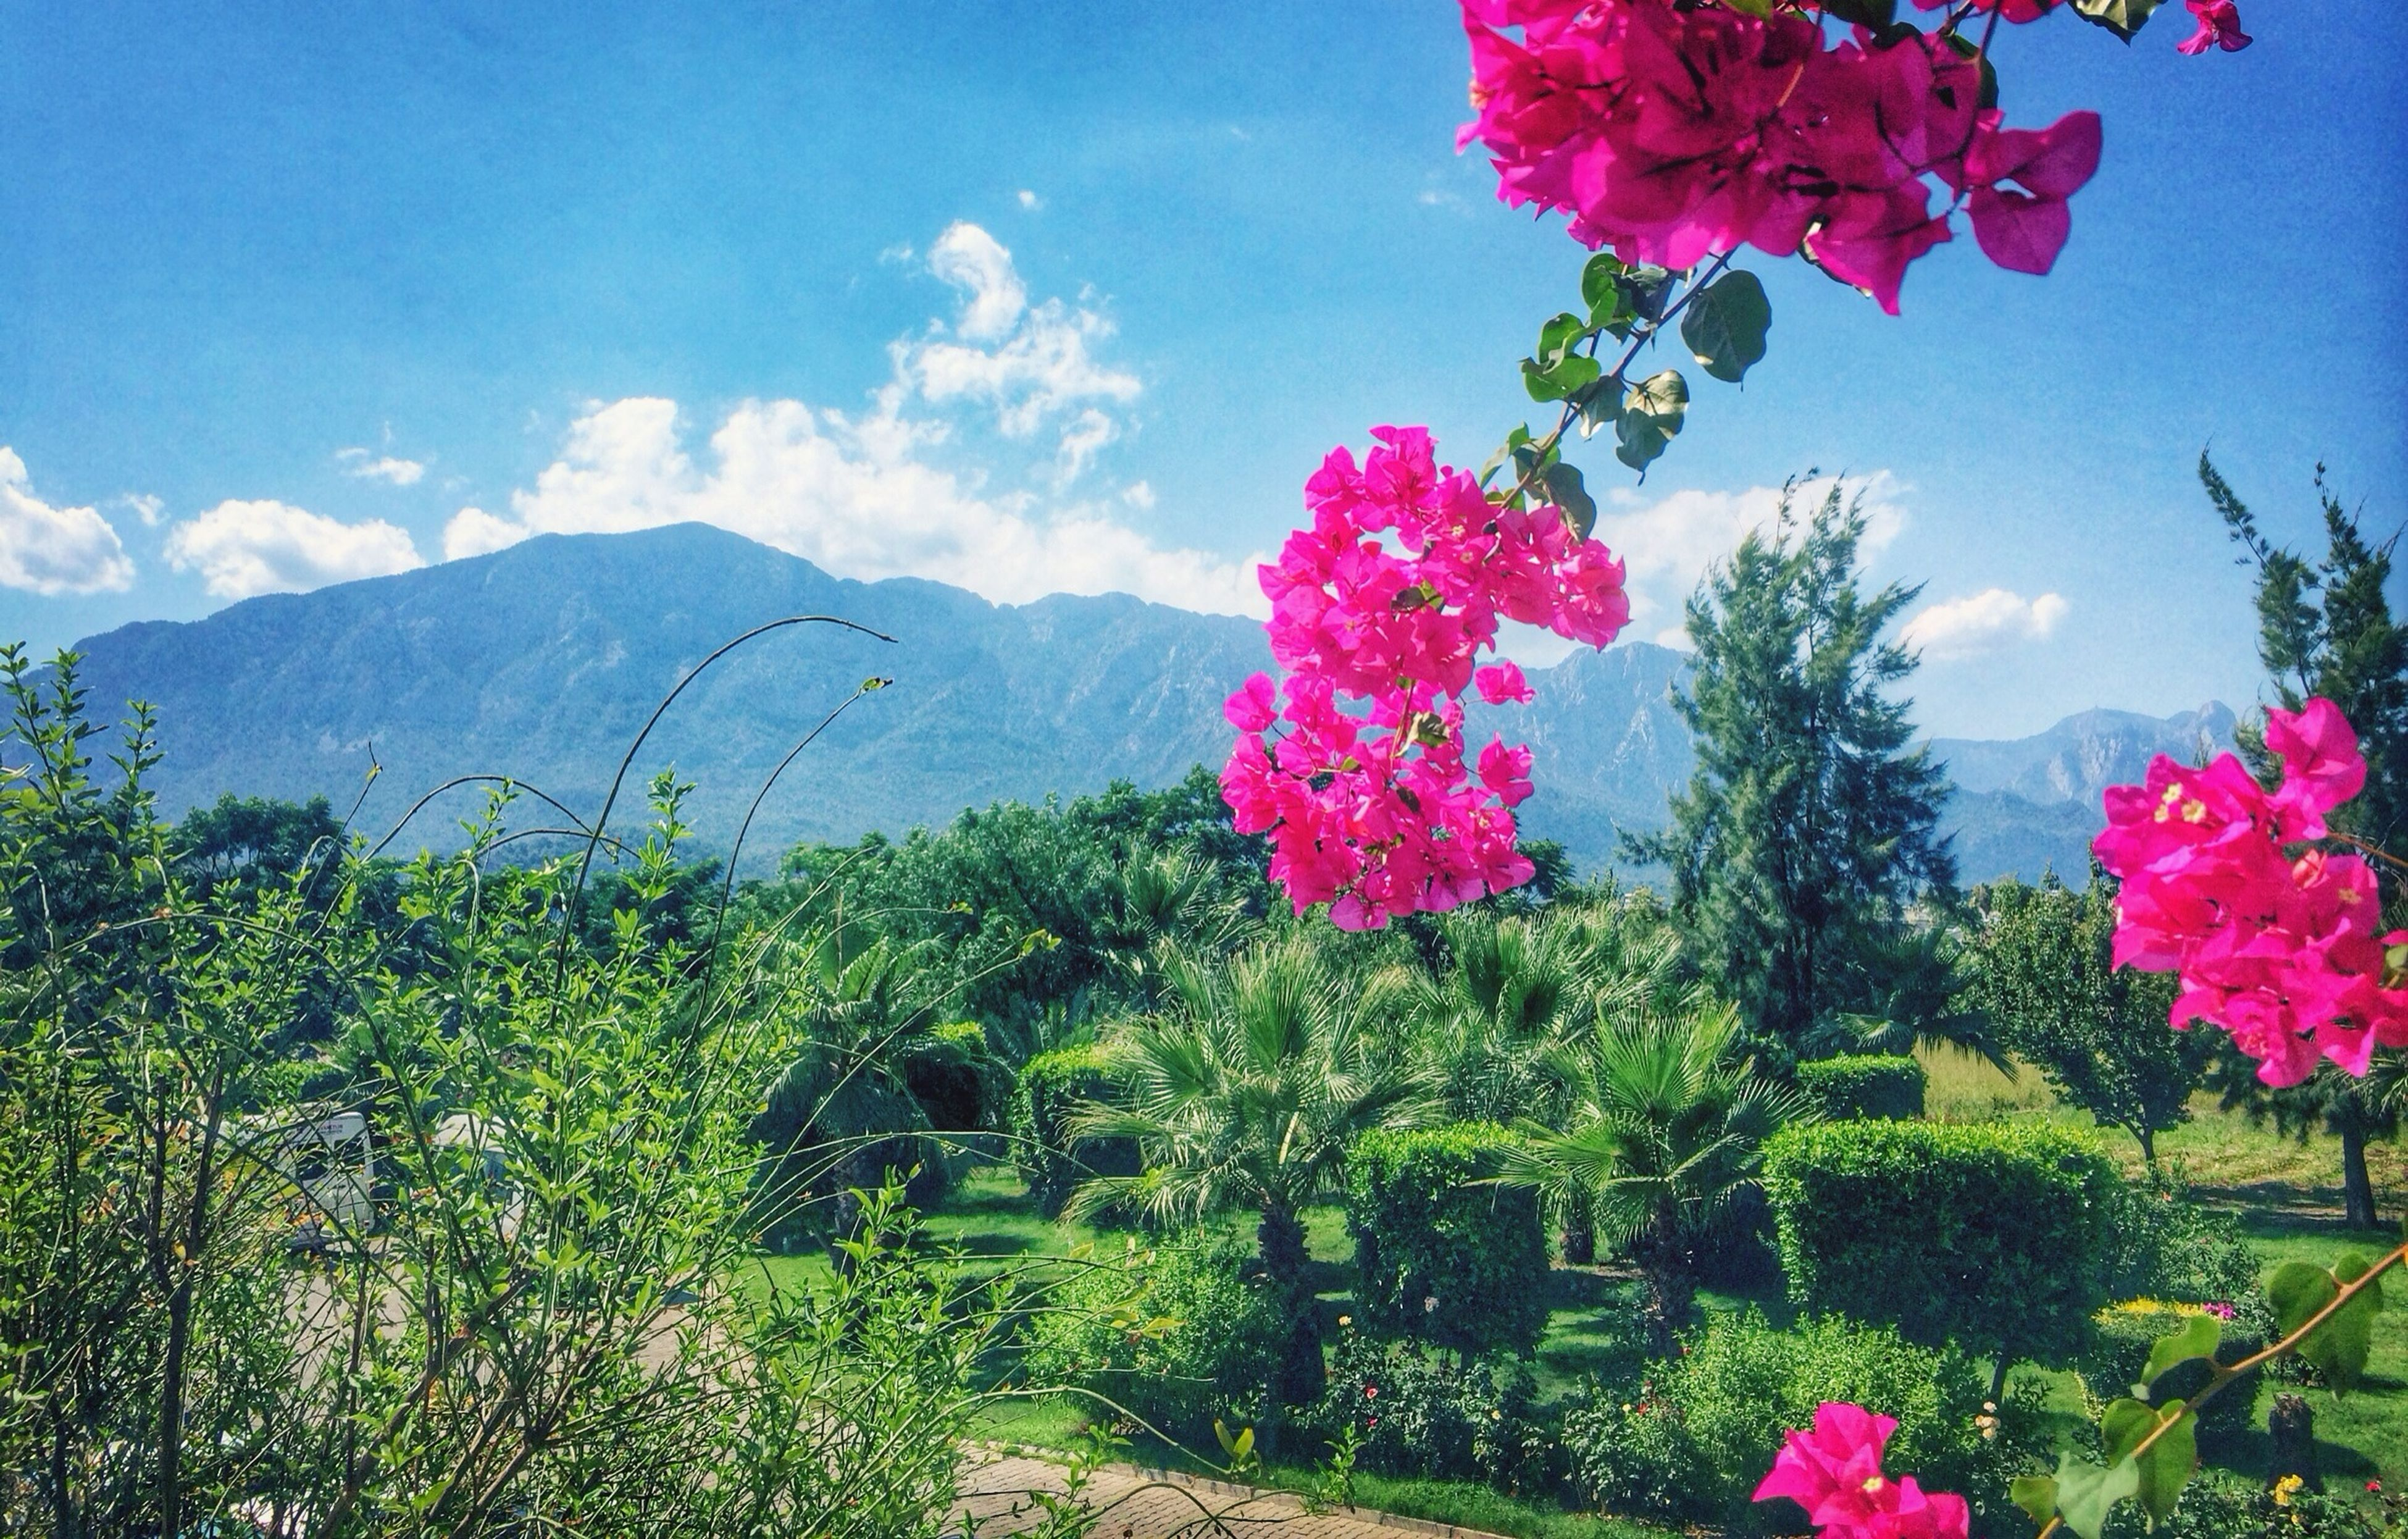 flower, freshness, pink color, fragility, growth, beauty in nature, sky, blooming, petal, nature, plant, tree, cloud - sky, in bloom, flower head, blossom, field, tranquil scene, day, tranquility